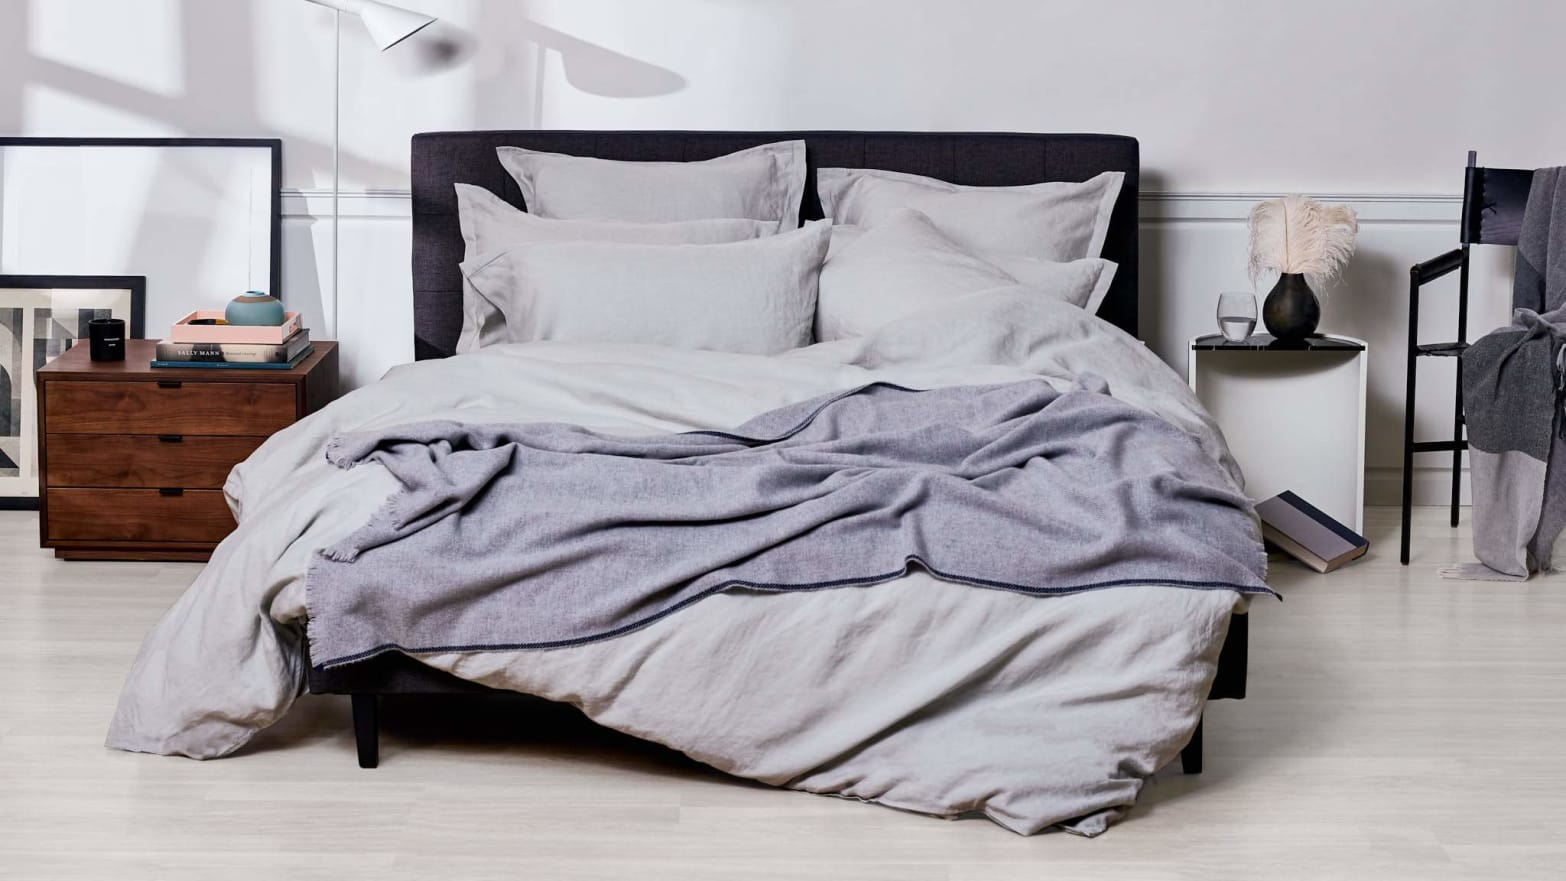 Linen Sheets for Spring and Summer